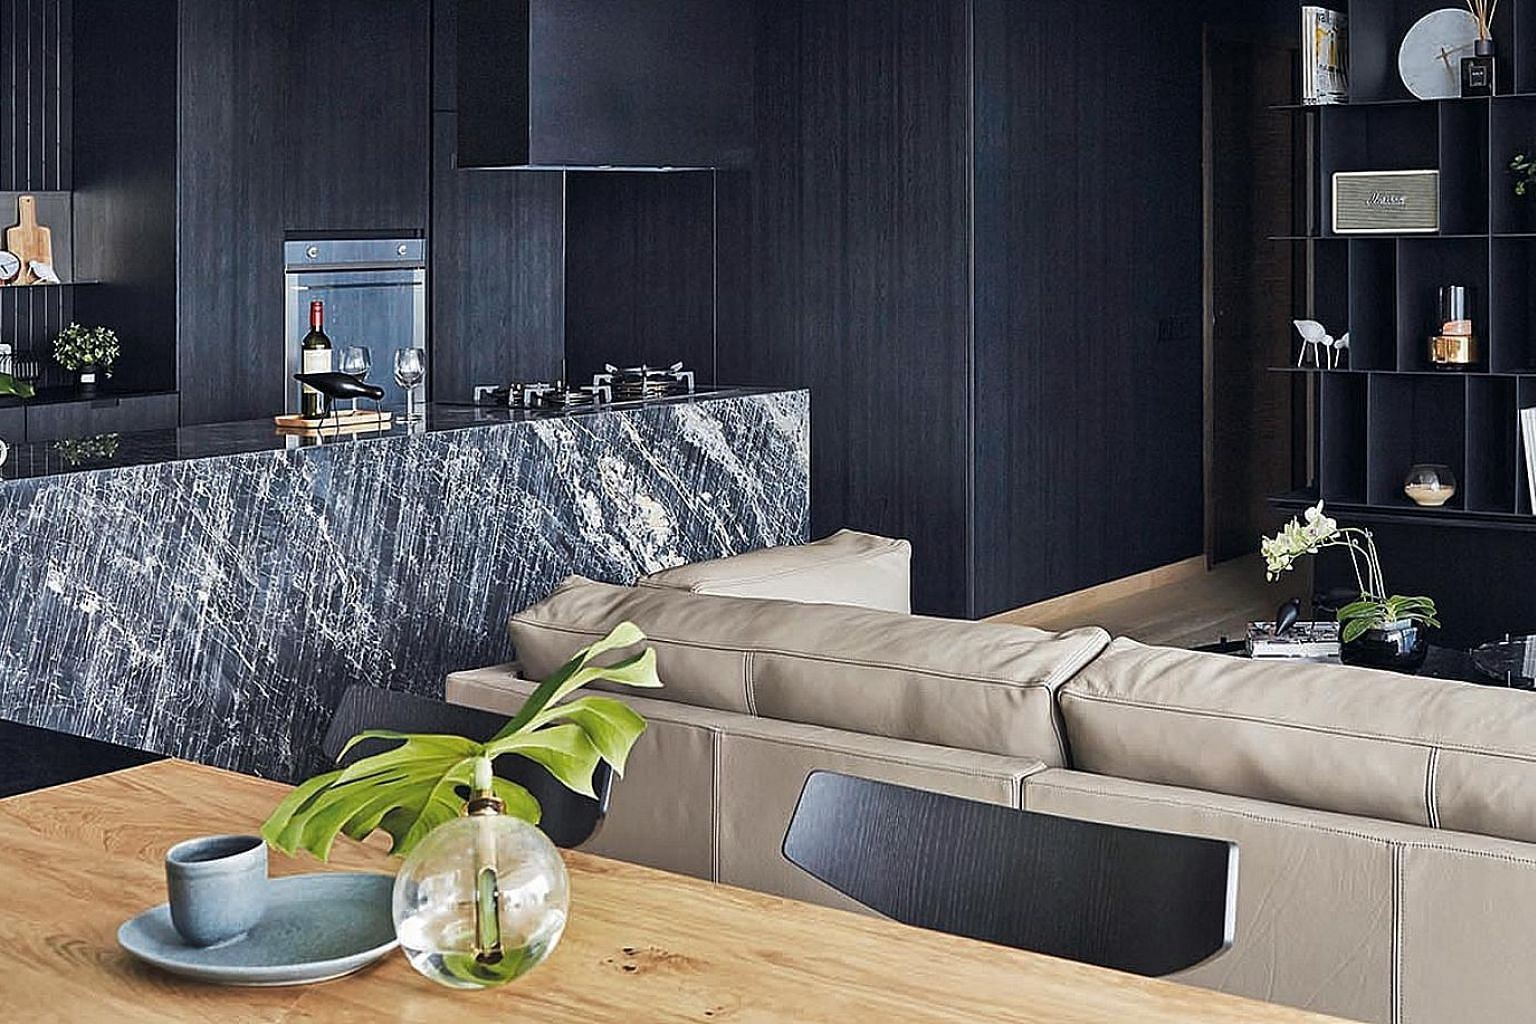 Wood furniture, such as the Bolia Bird dining chairs, as well as plants give the home pops of colour. The colour black is seen throughout the home, such as on the feature walls in the living room (above) as well as kitchen cabinets (top).